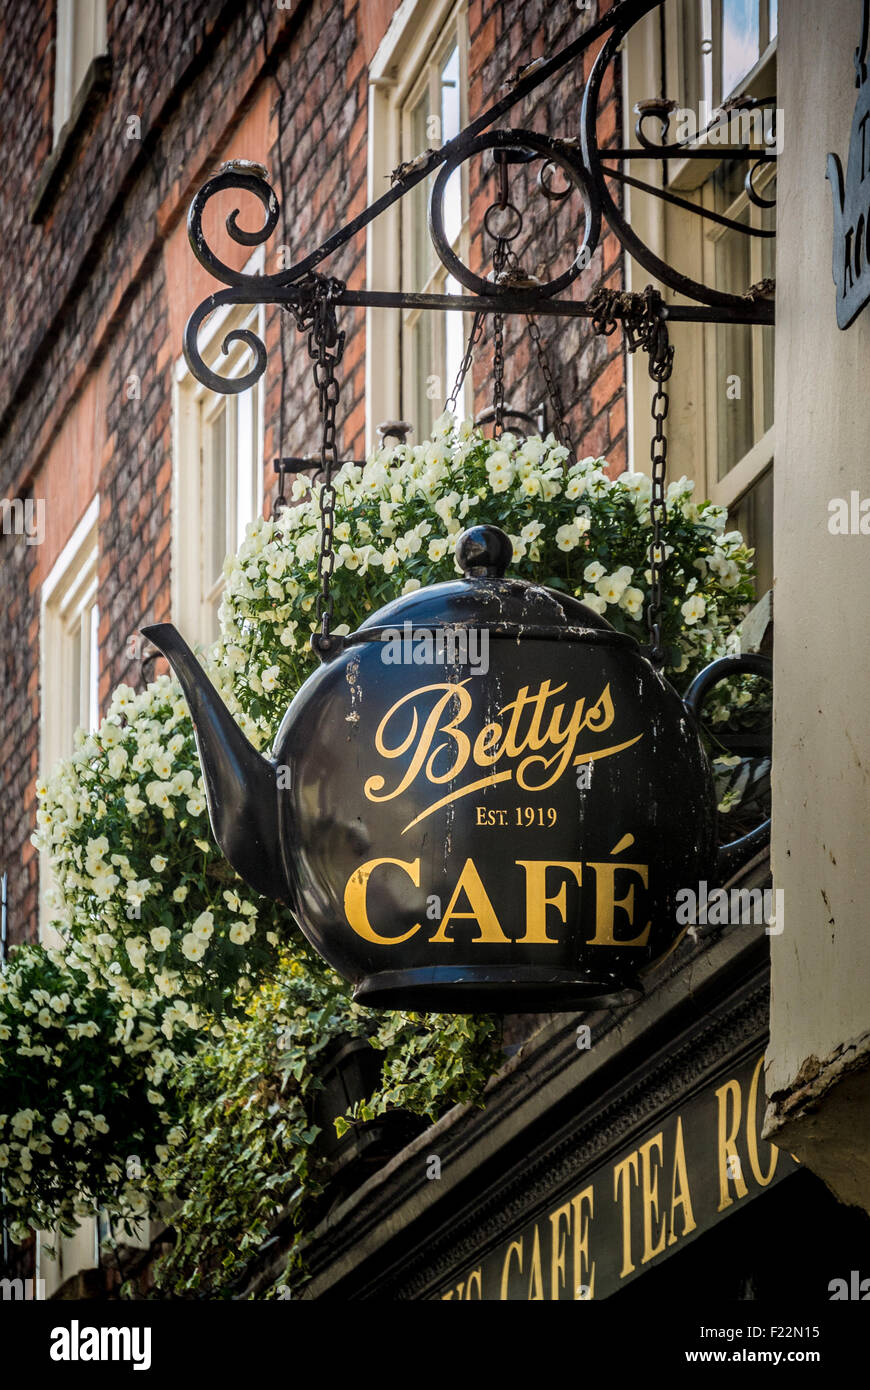 Teapot shaped exterior sign at Little Bettys Cafe - Stock Image